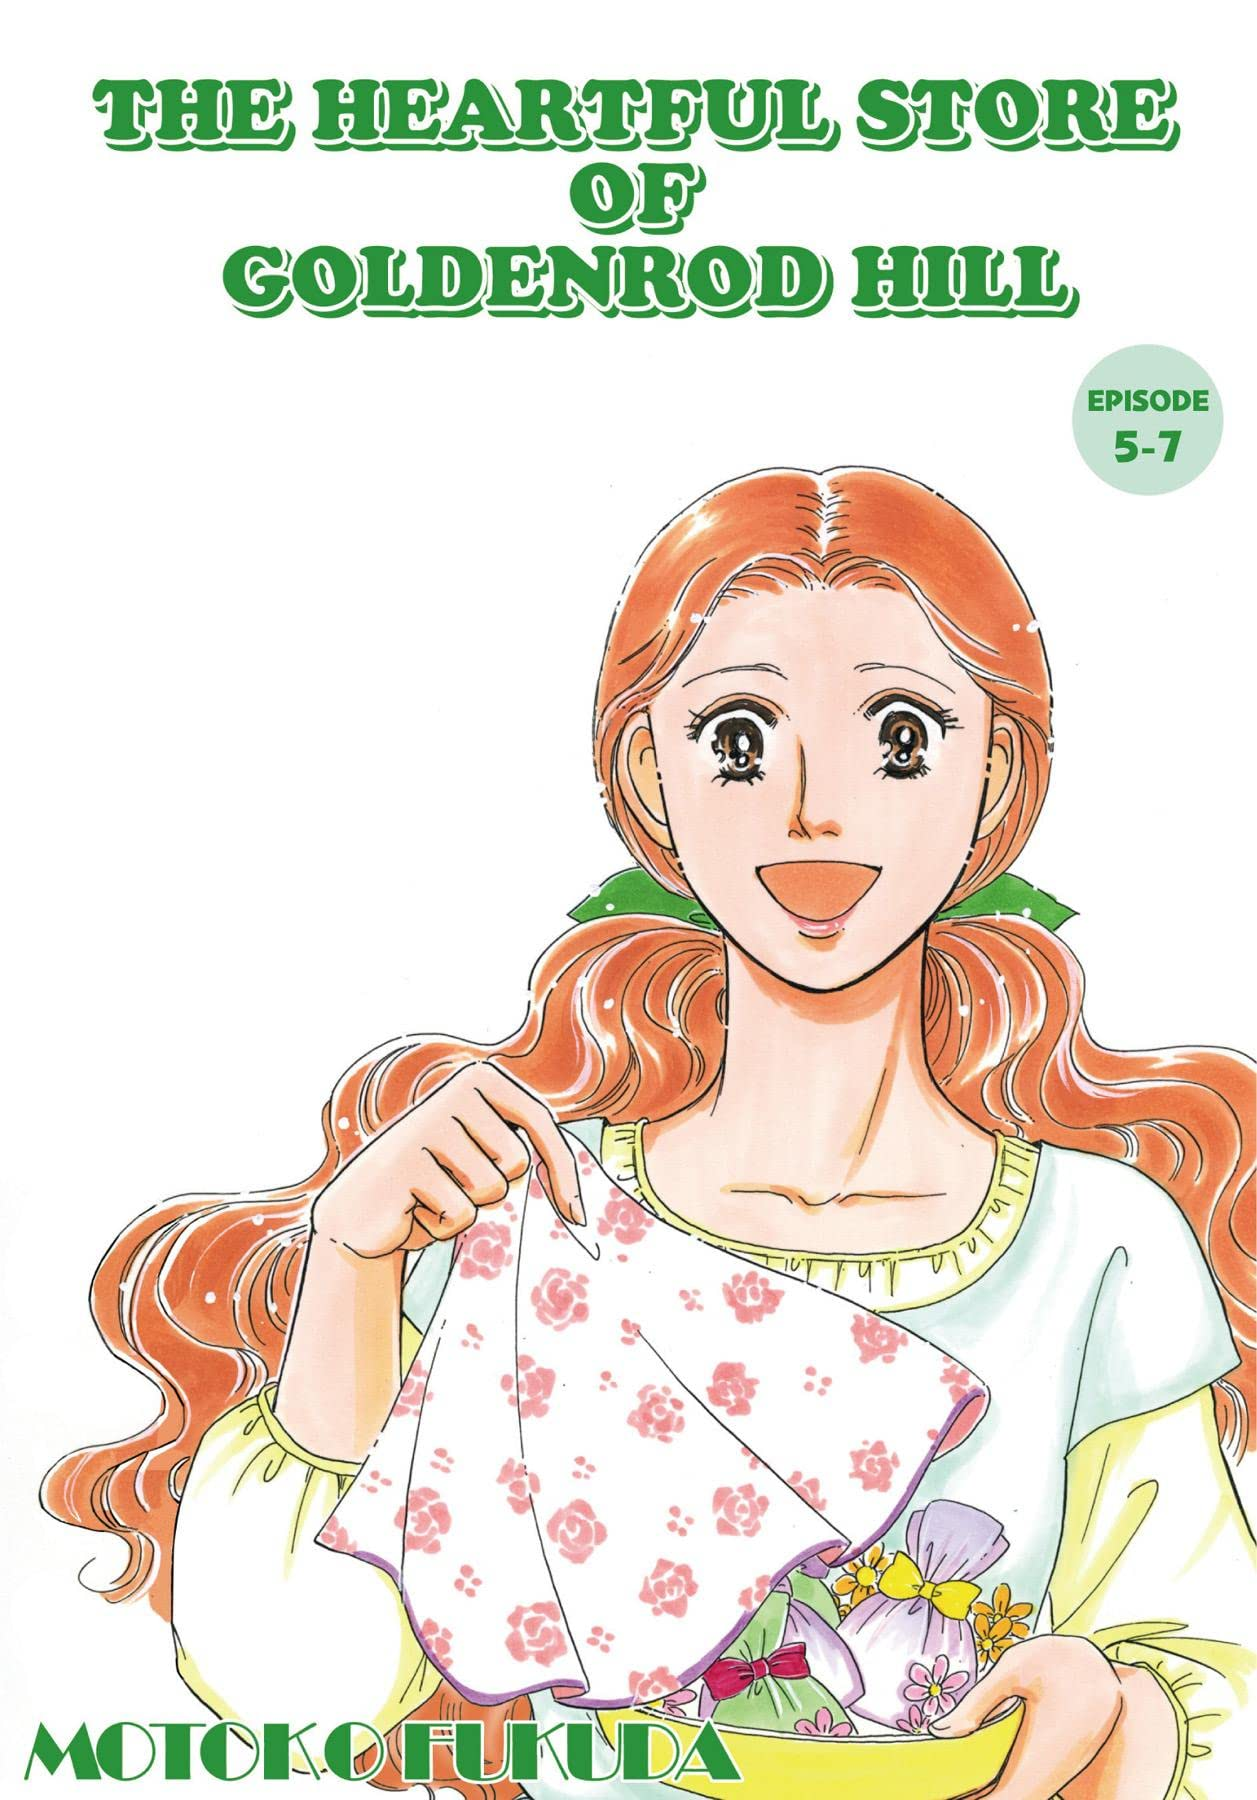 THE HEARTFUL STORE OF GOLDENROD HILL #35